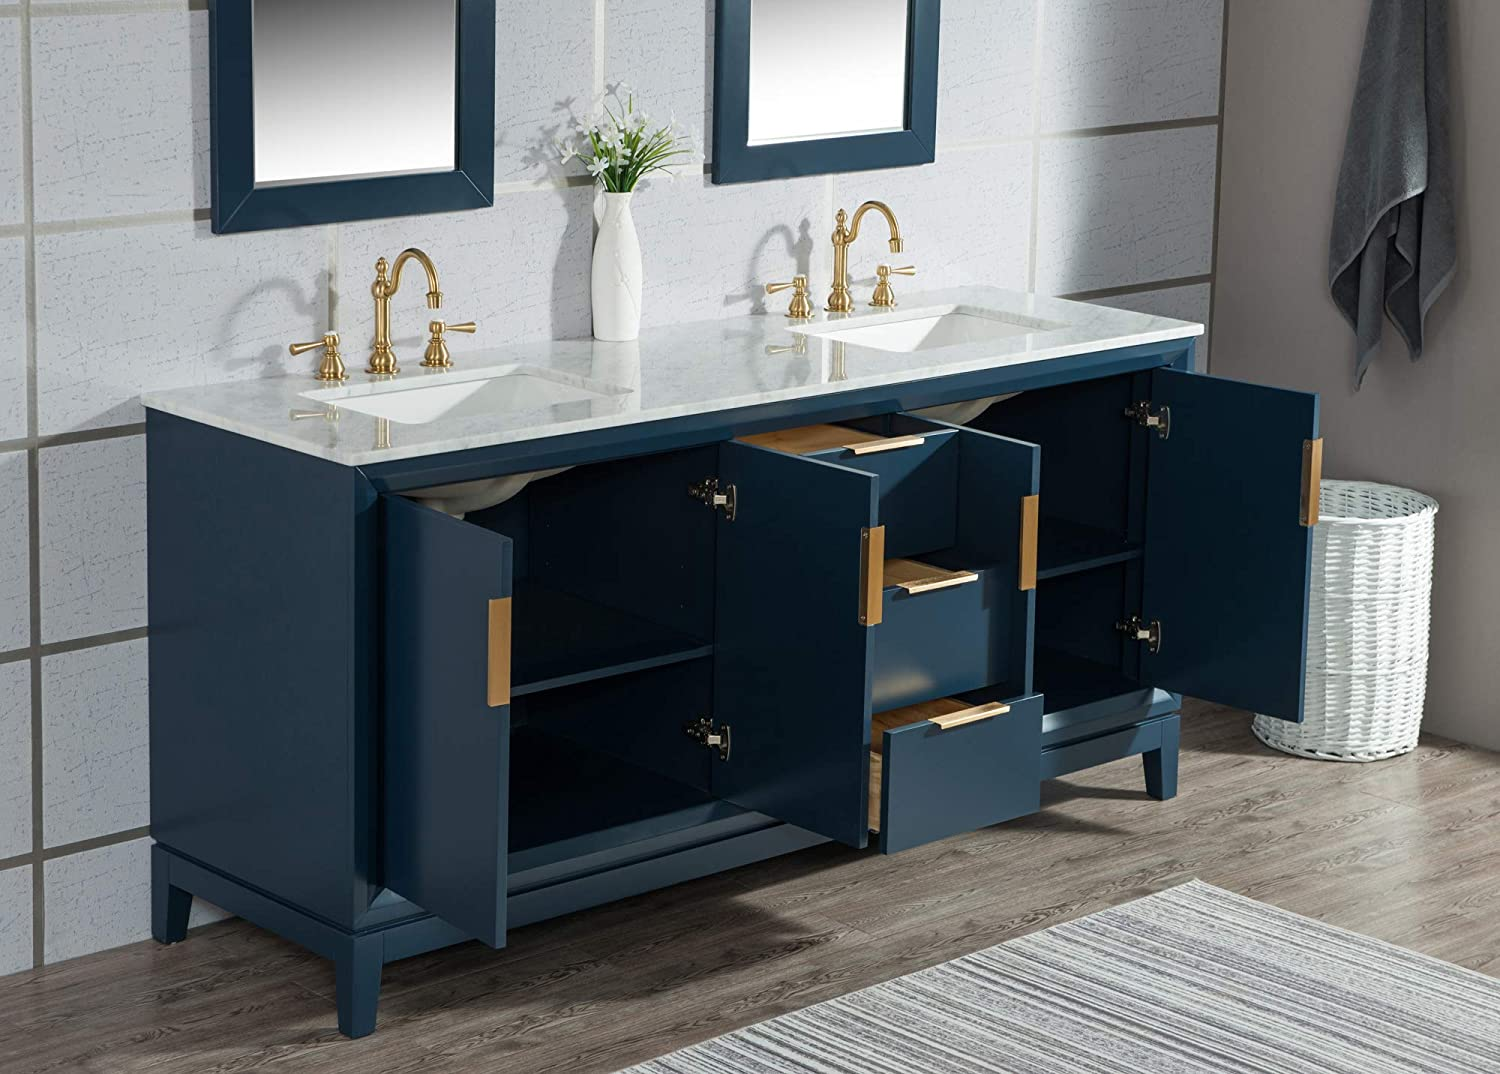 Carrara Marble Counter Top Transitional Freestanding Hardwood Bathroom Vanity With Sinks And Cabinet And Gold Handles Elizabeth Collection Water Creation 72 Double Sink Vanity In Monarch Blue Tools Home Improvement Bathroom